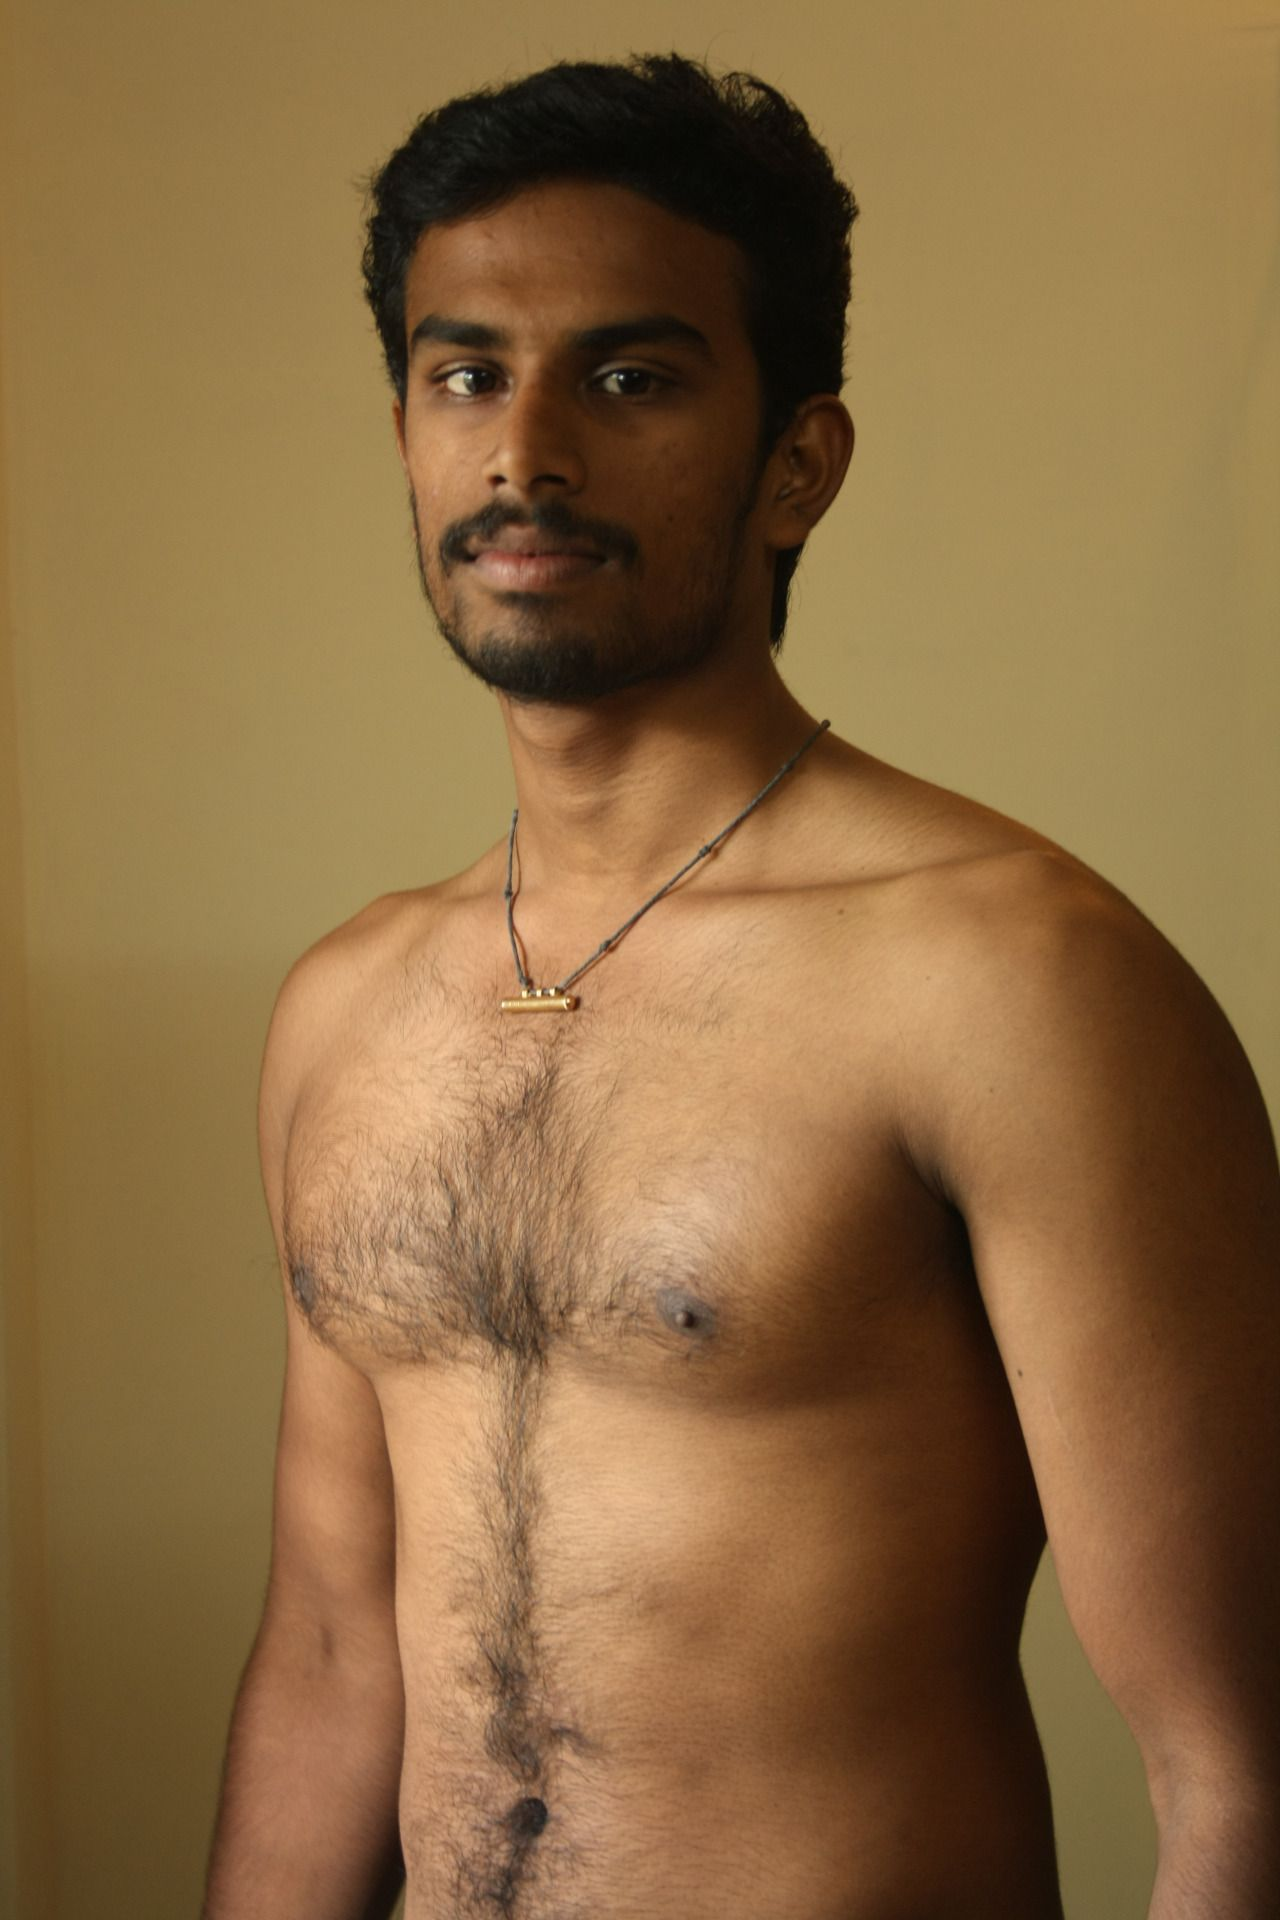 Young Hairy Chests  Indian Hot Man In 2019  Hairy Men -1133